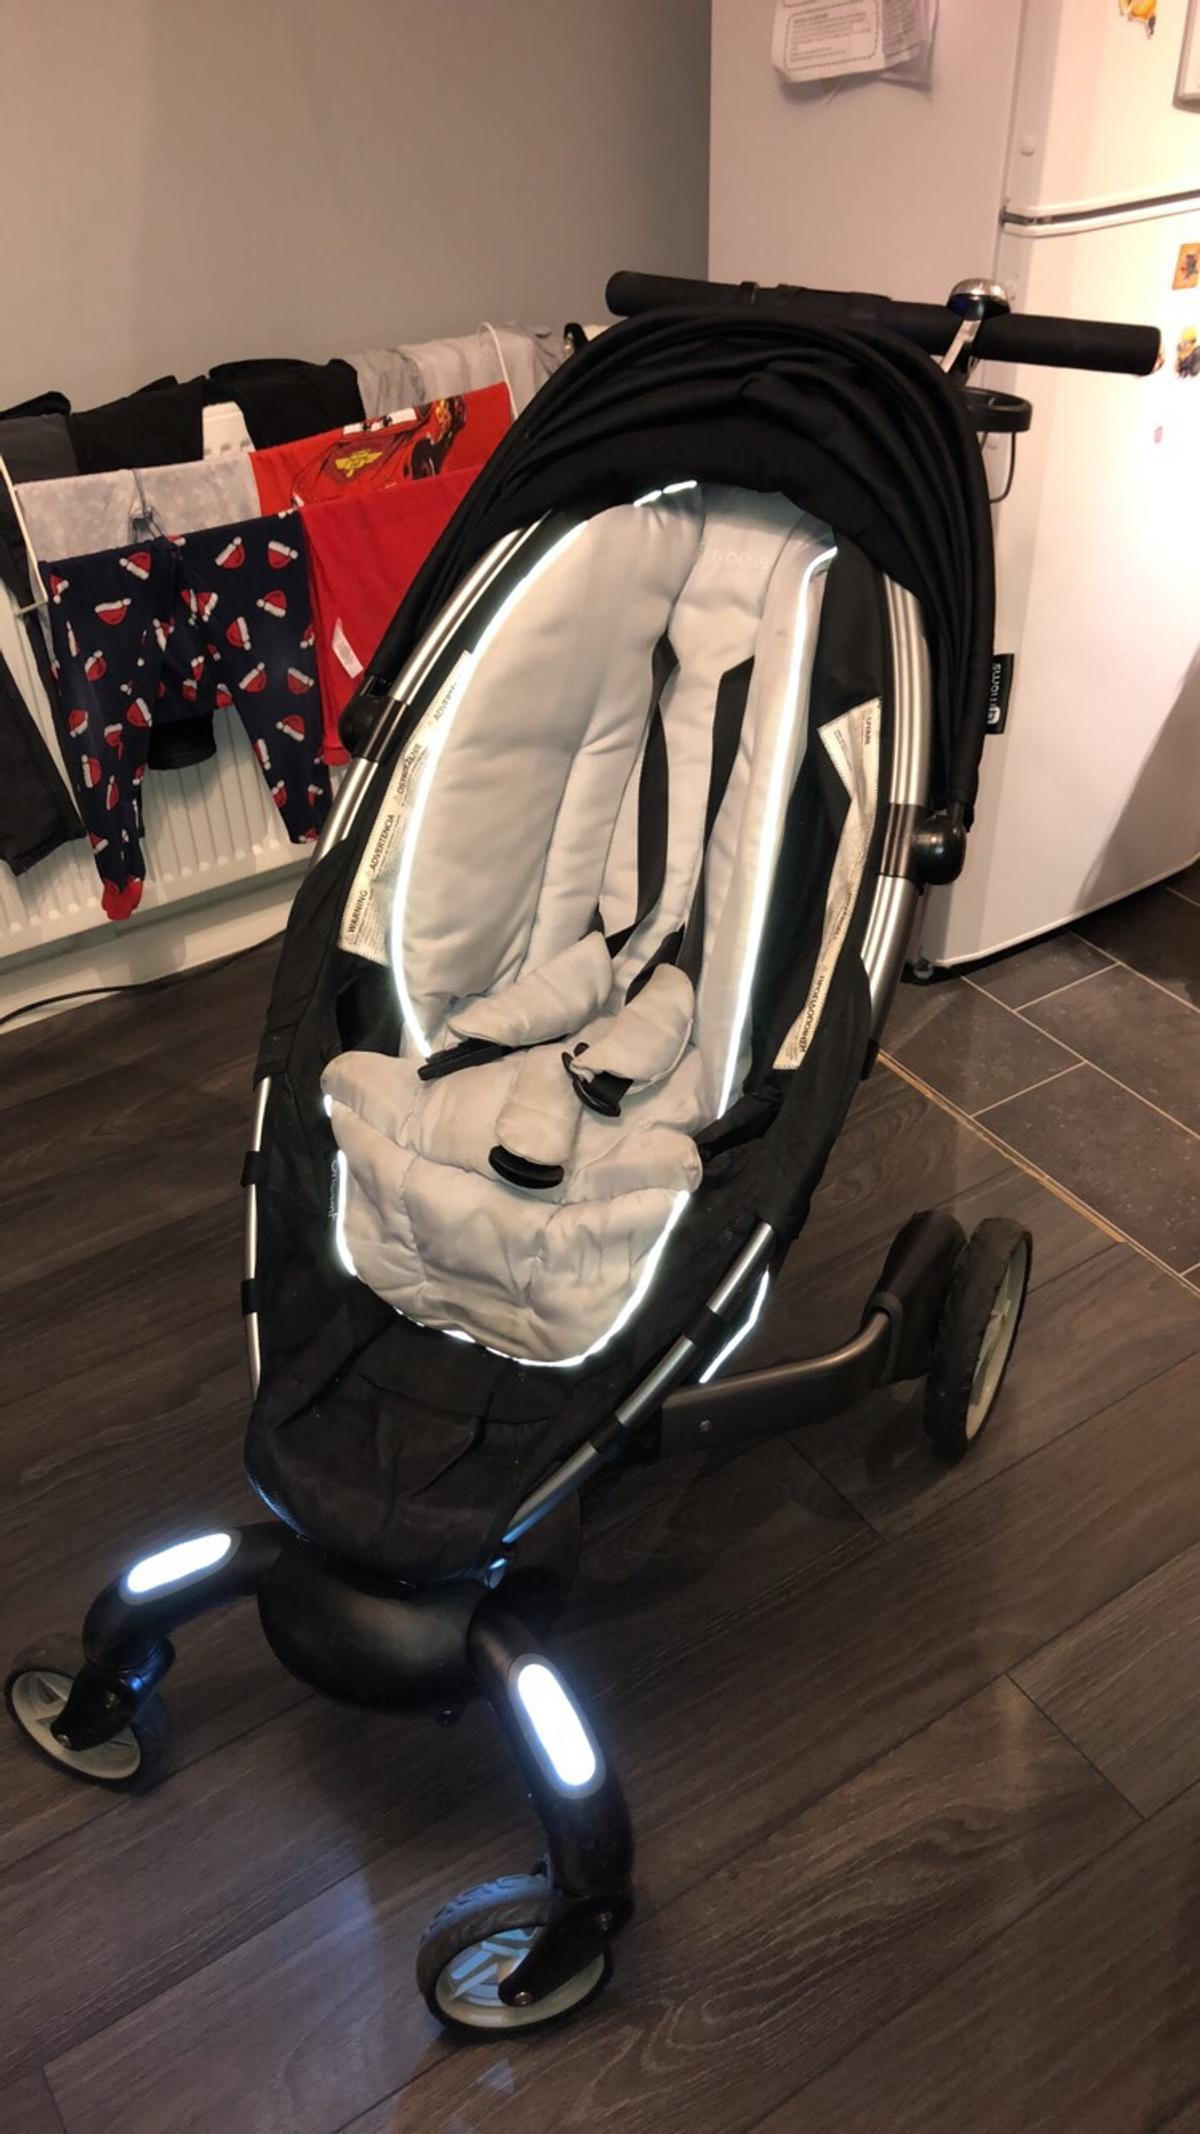 4moms Origami Stroller Review - Techlicious | 2134x1200